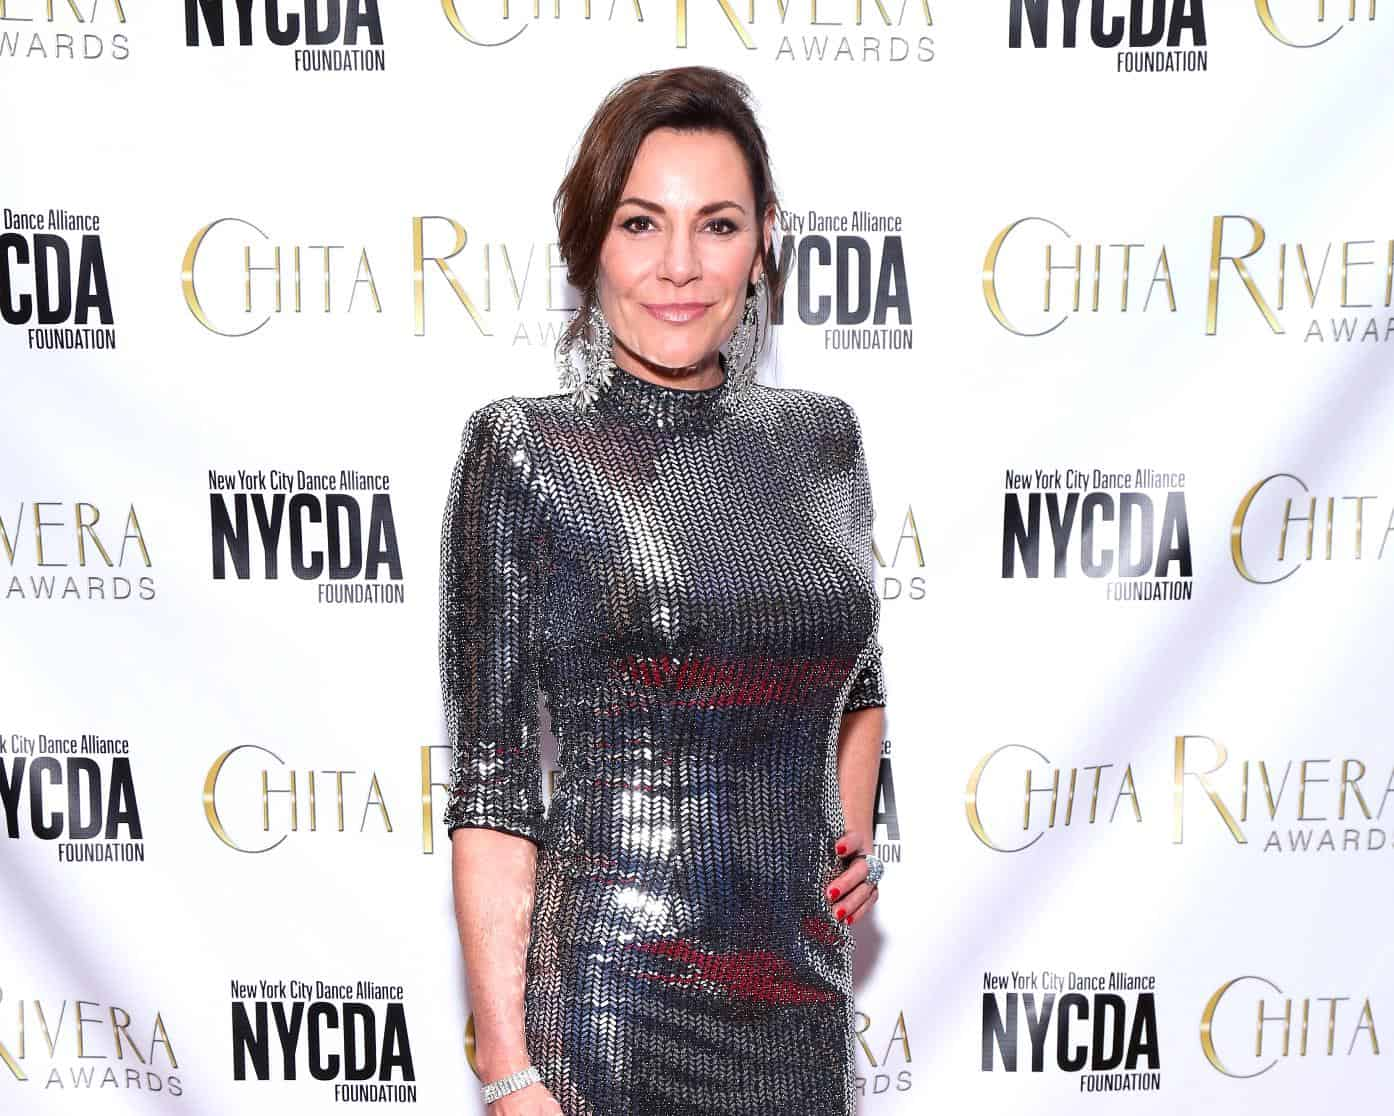 RHONY Star Luann de Lesseps Former Assistant Slams Her as a